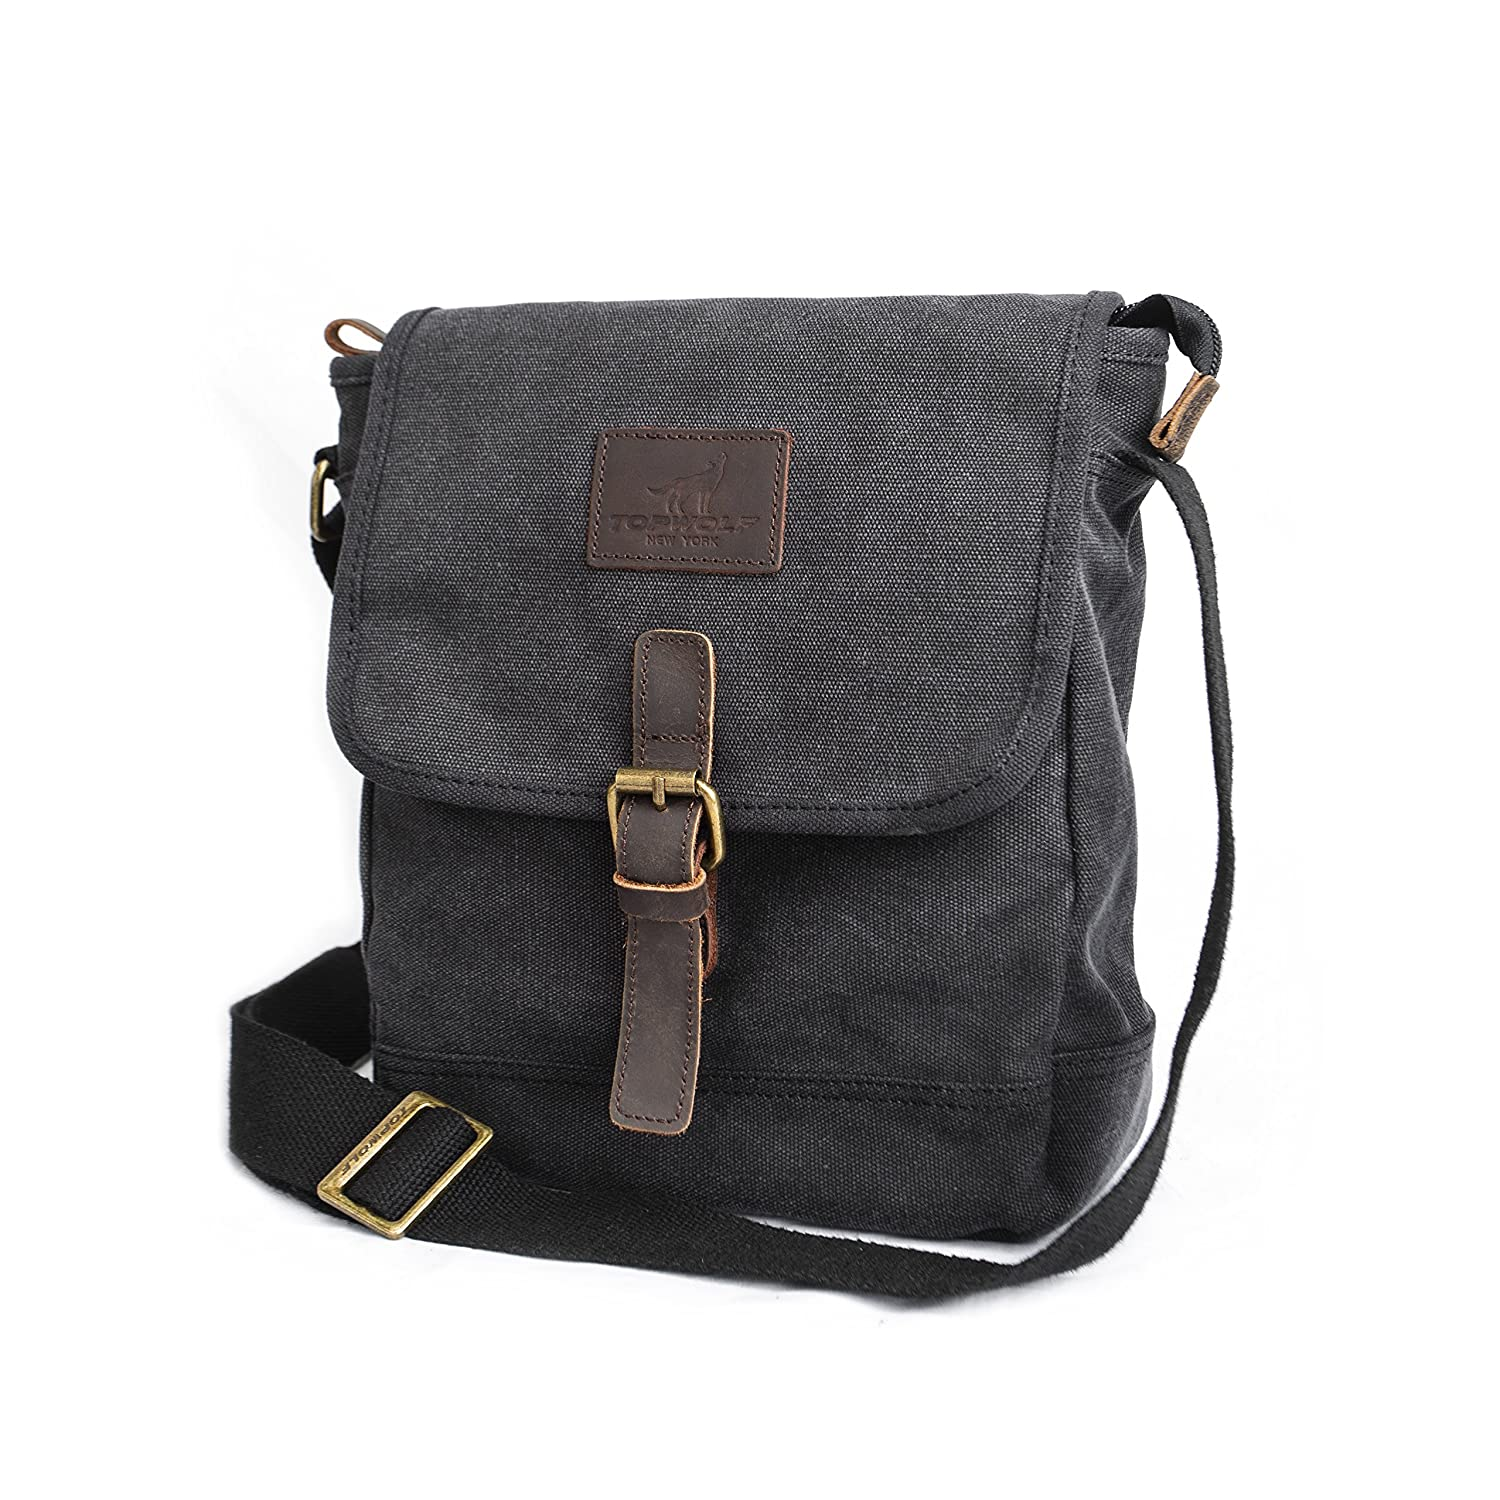 3f8facf52 Amazon.com | Canvas Messenger Bag TOPWOLF Small Crossbody Bag Casual Travel  Working Tools Bag Shoulder Bag Hold Phone Handset Anti Theft | Messenger  Bags